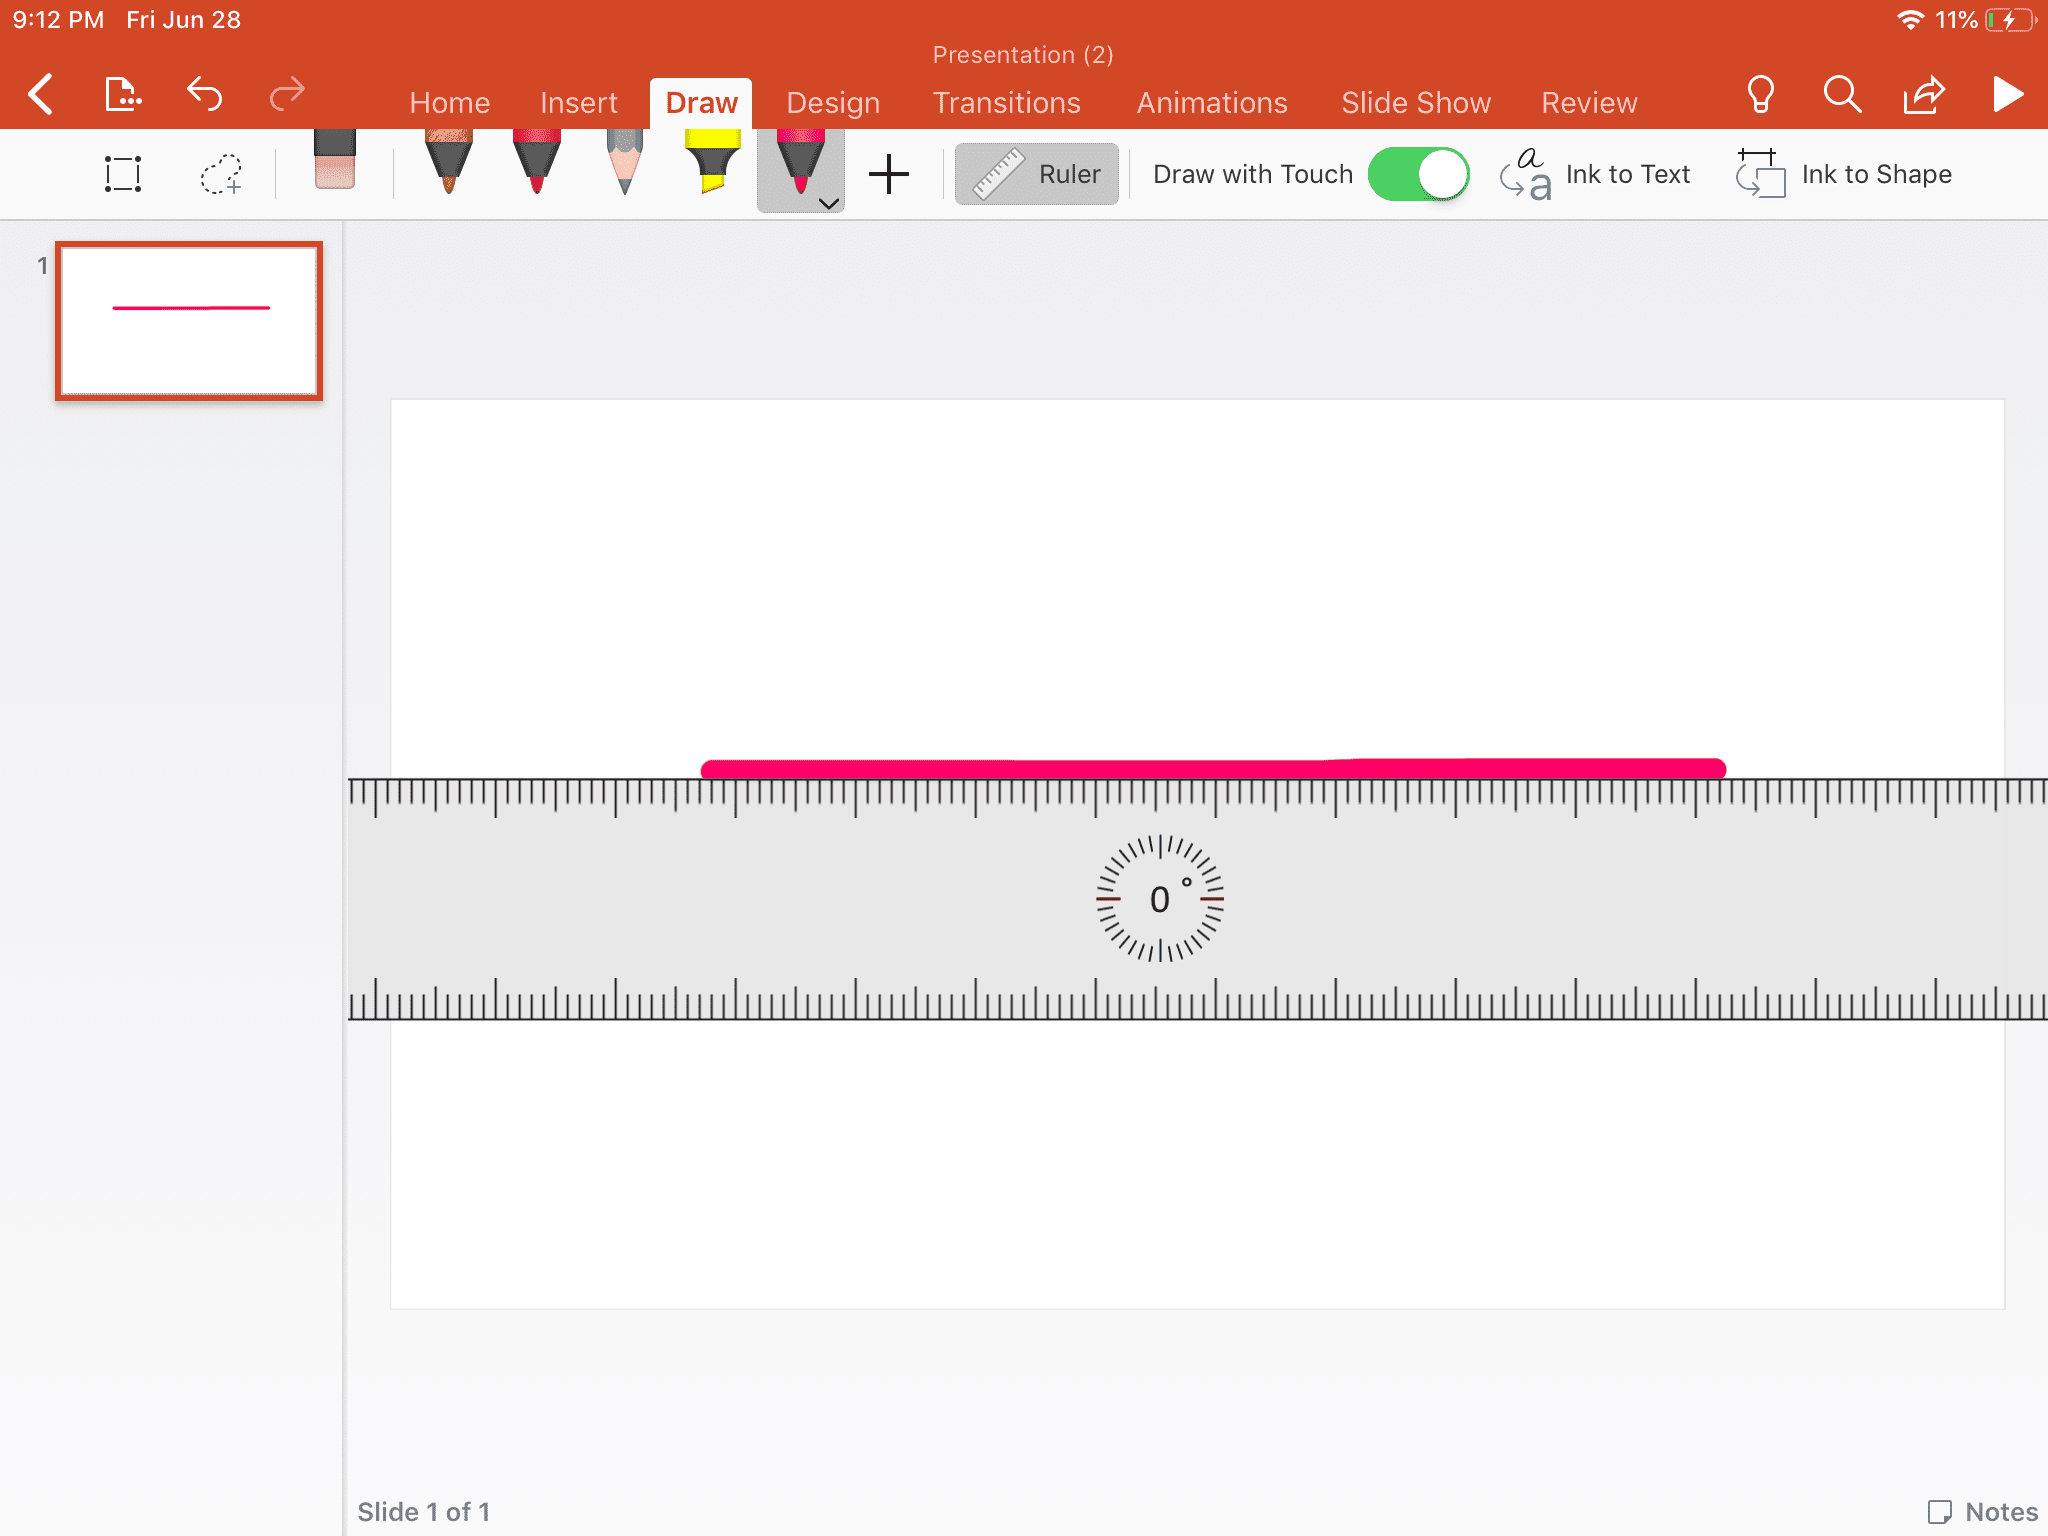 Drawing a straight line using the Pen and Ruler tools in Powerpoint